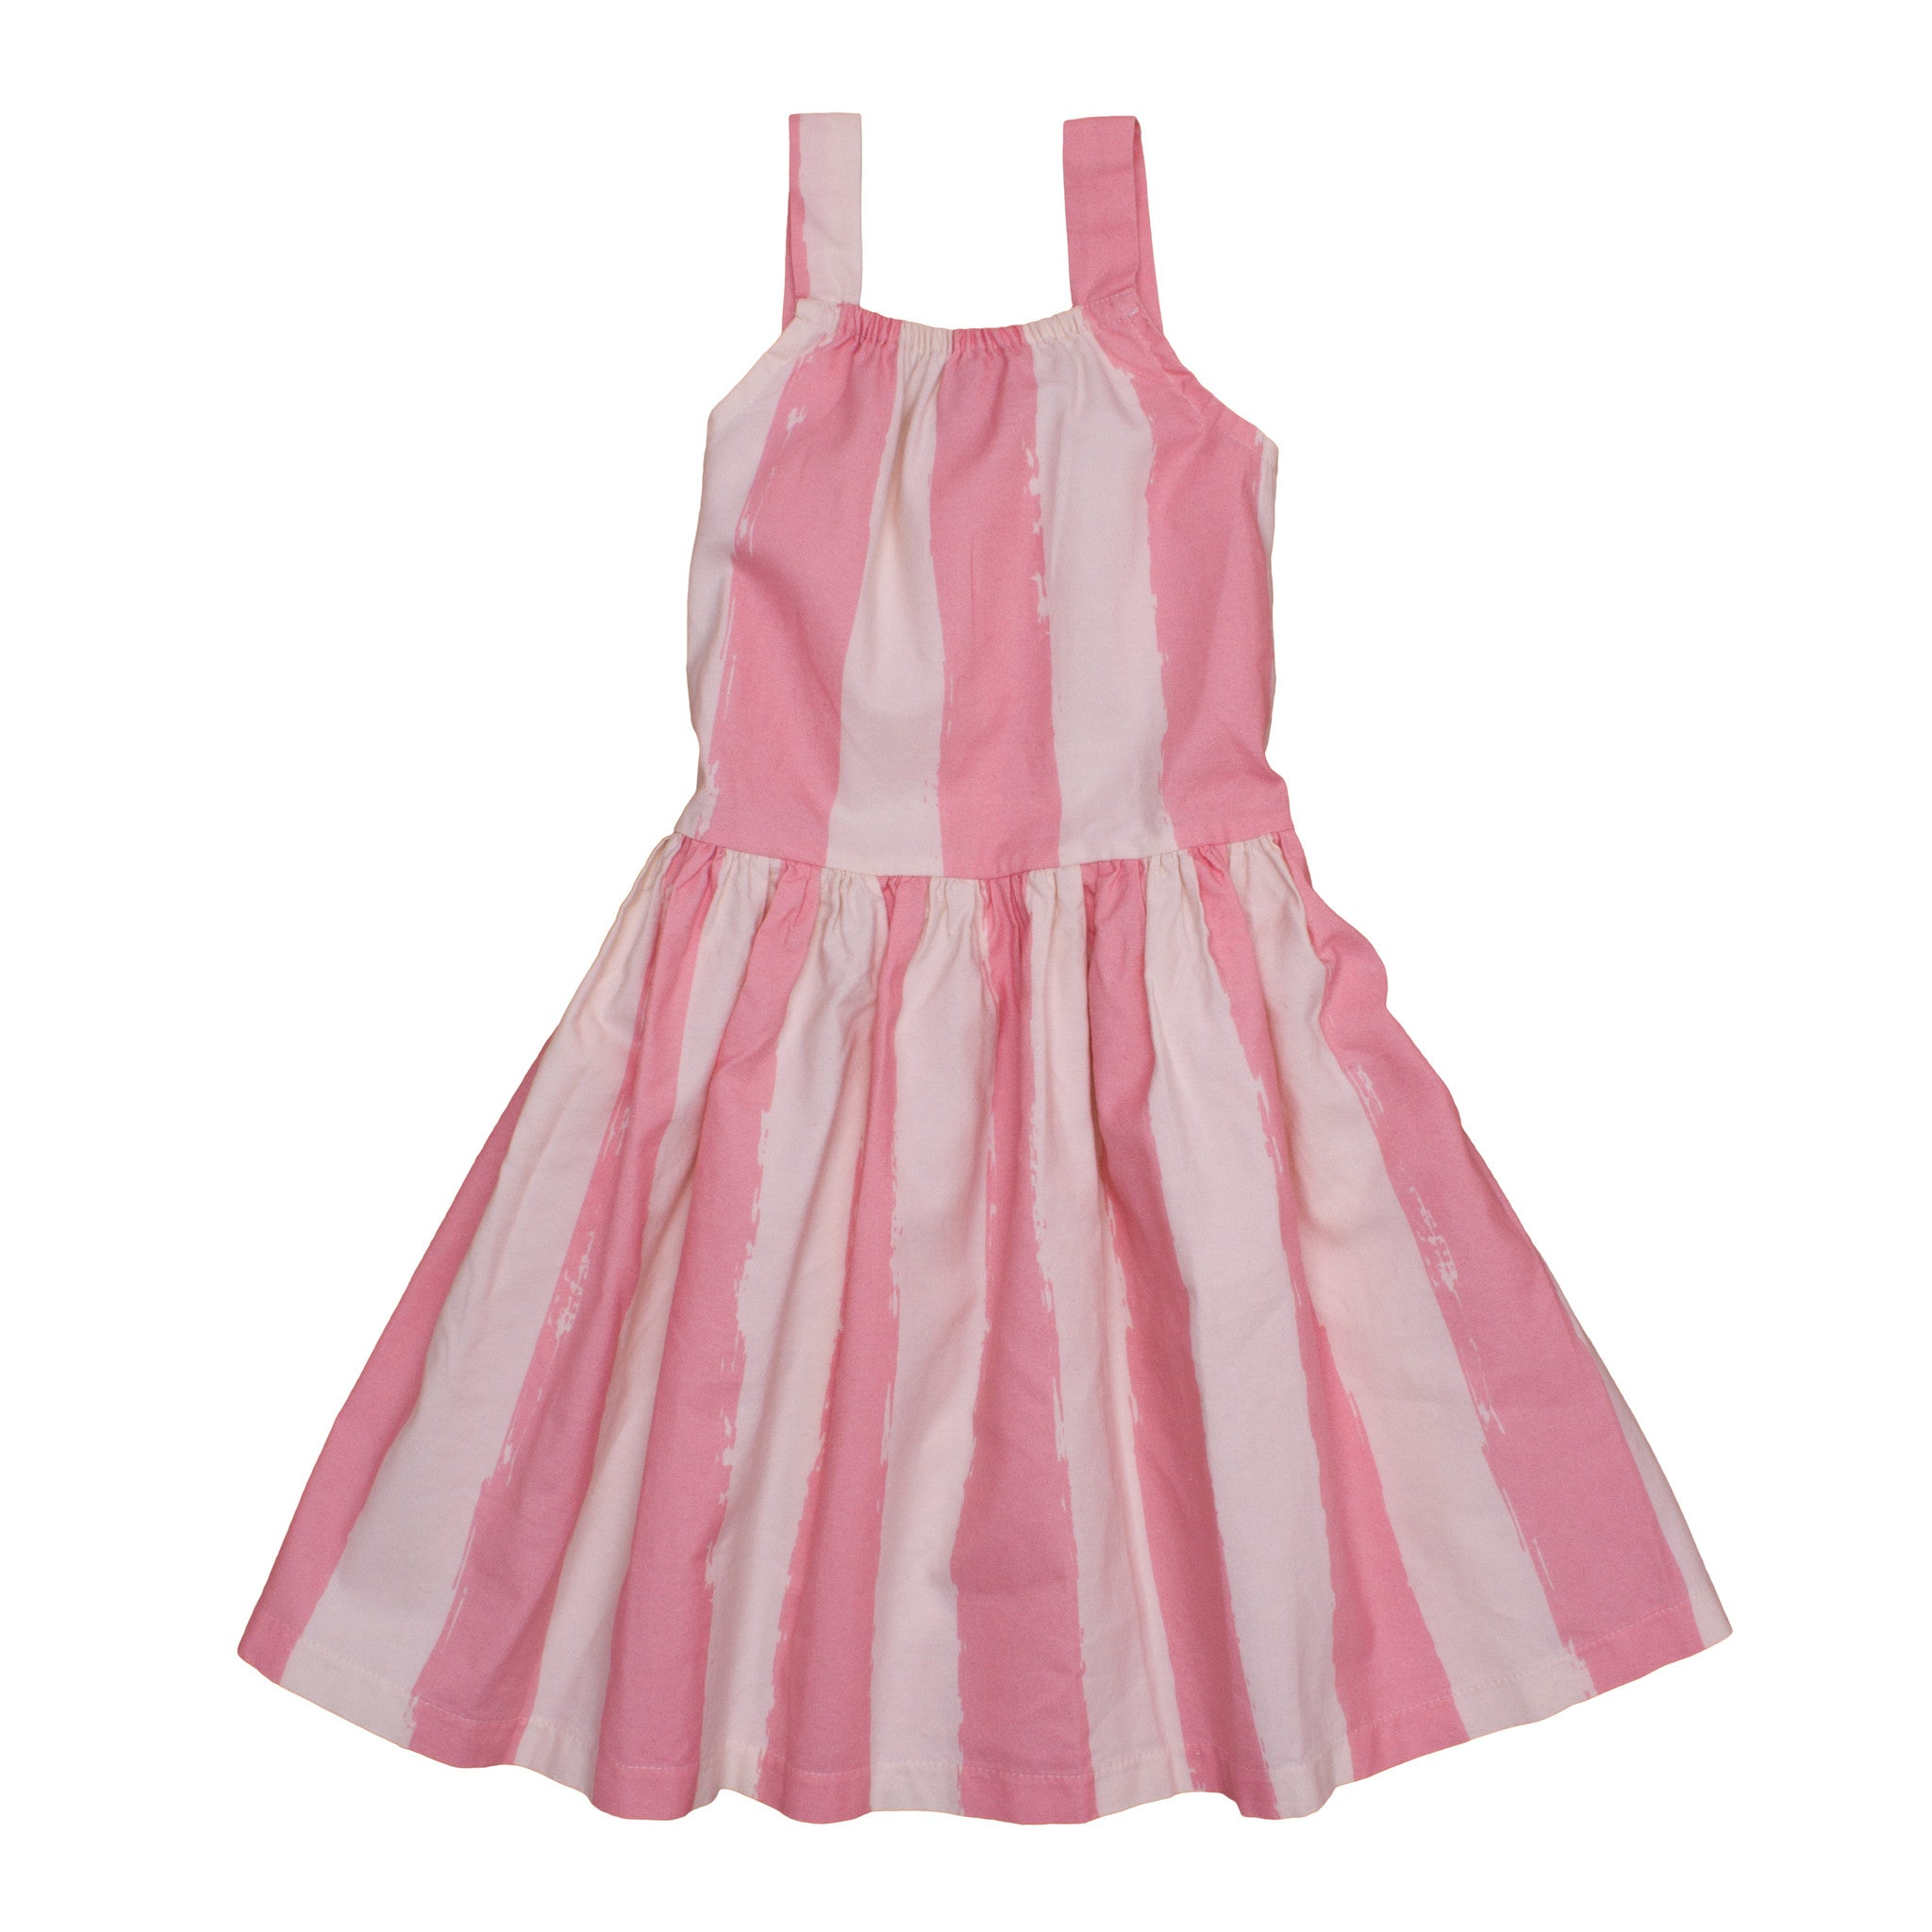 DANCING DRESS IN ROSE STRIPES